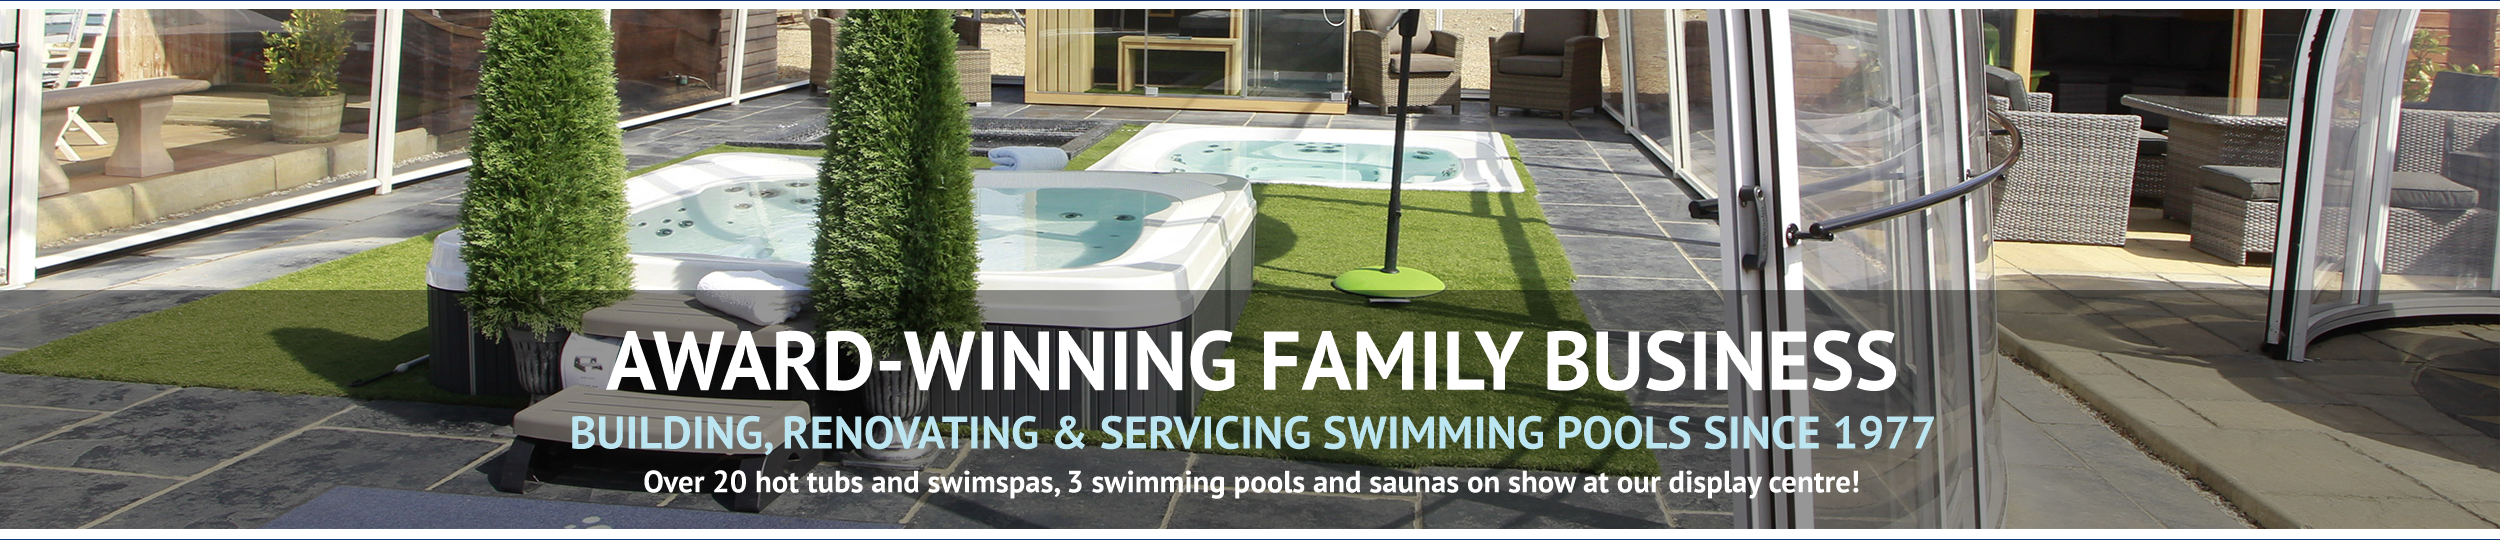 Wensum Pools Ltd Scrolling Banner // Award-Winning Family Business